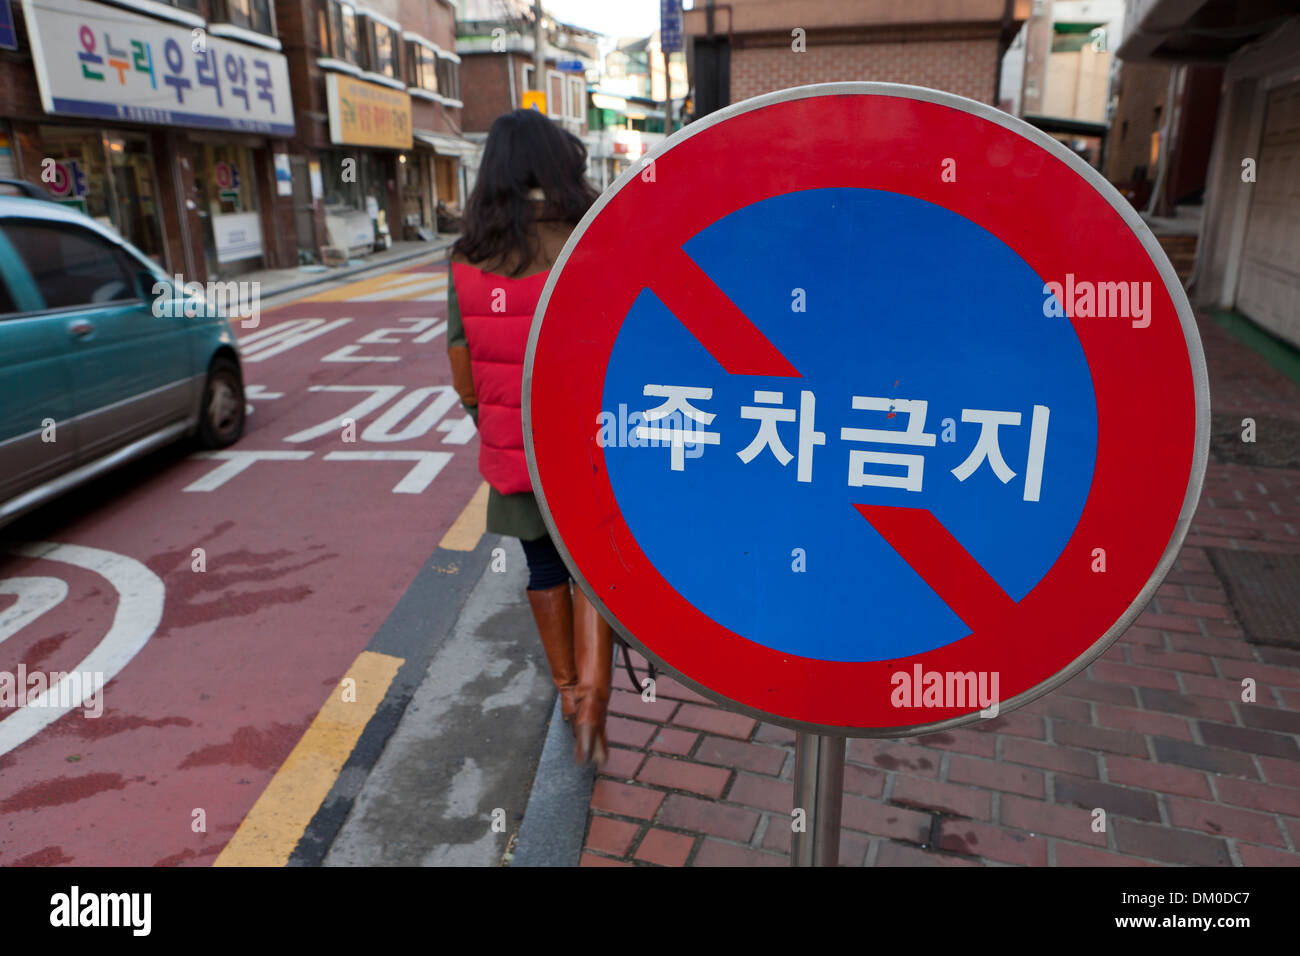 No Parking sign - Seoul, South Korea - Stock Image